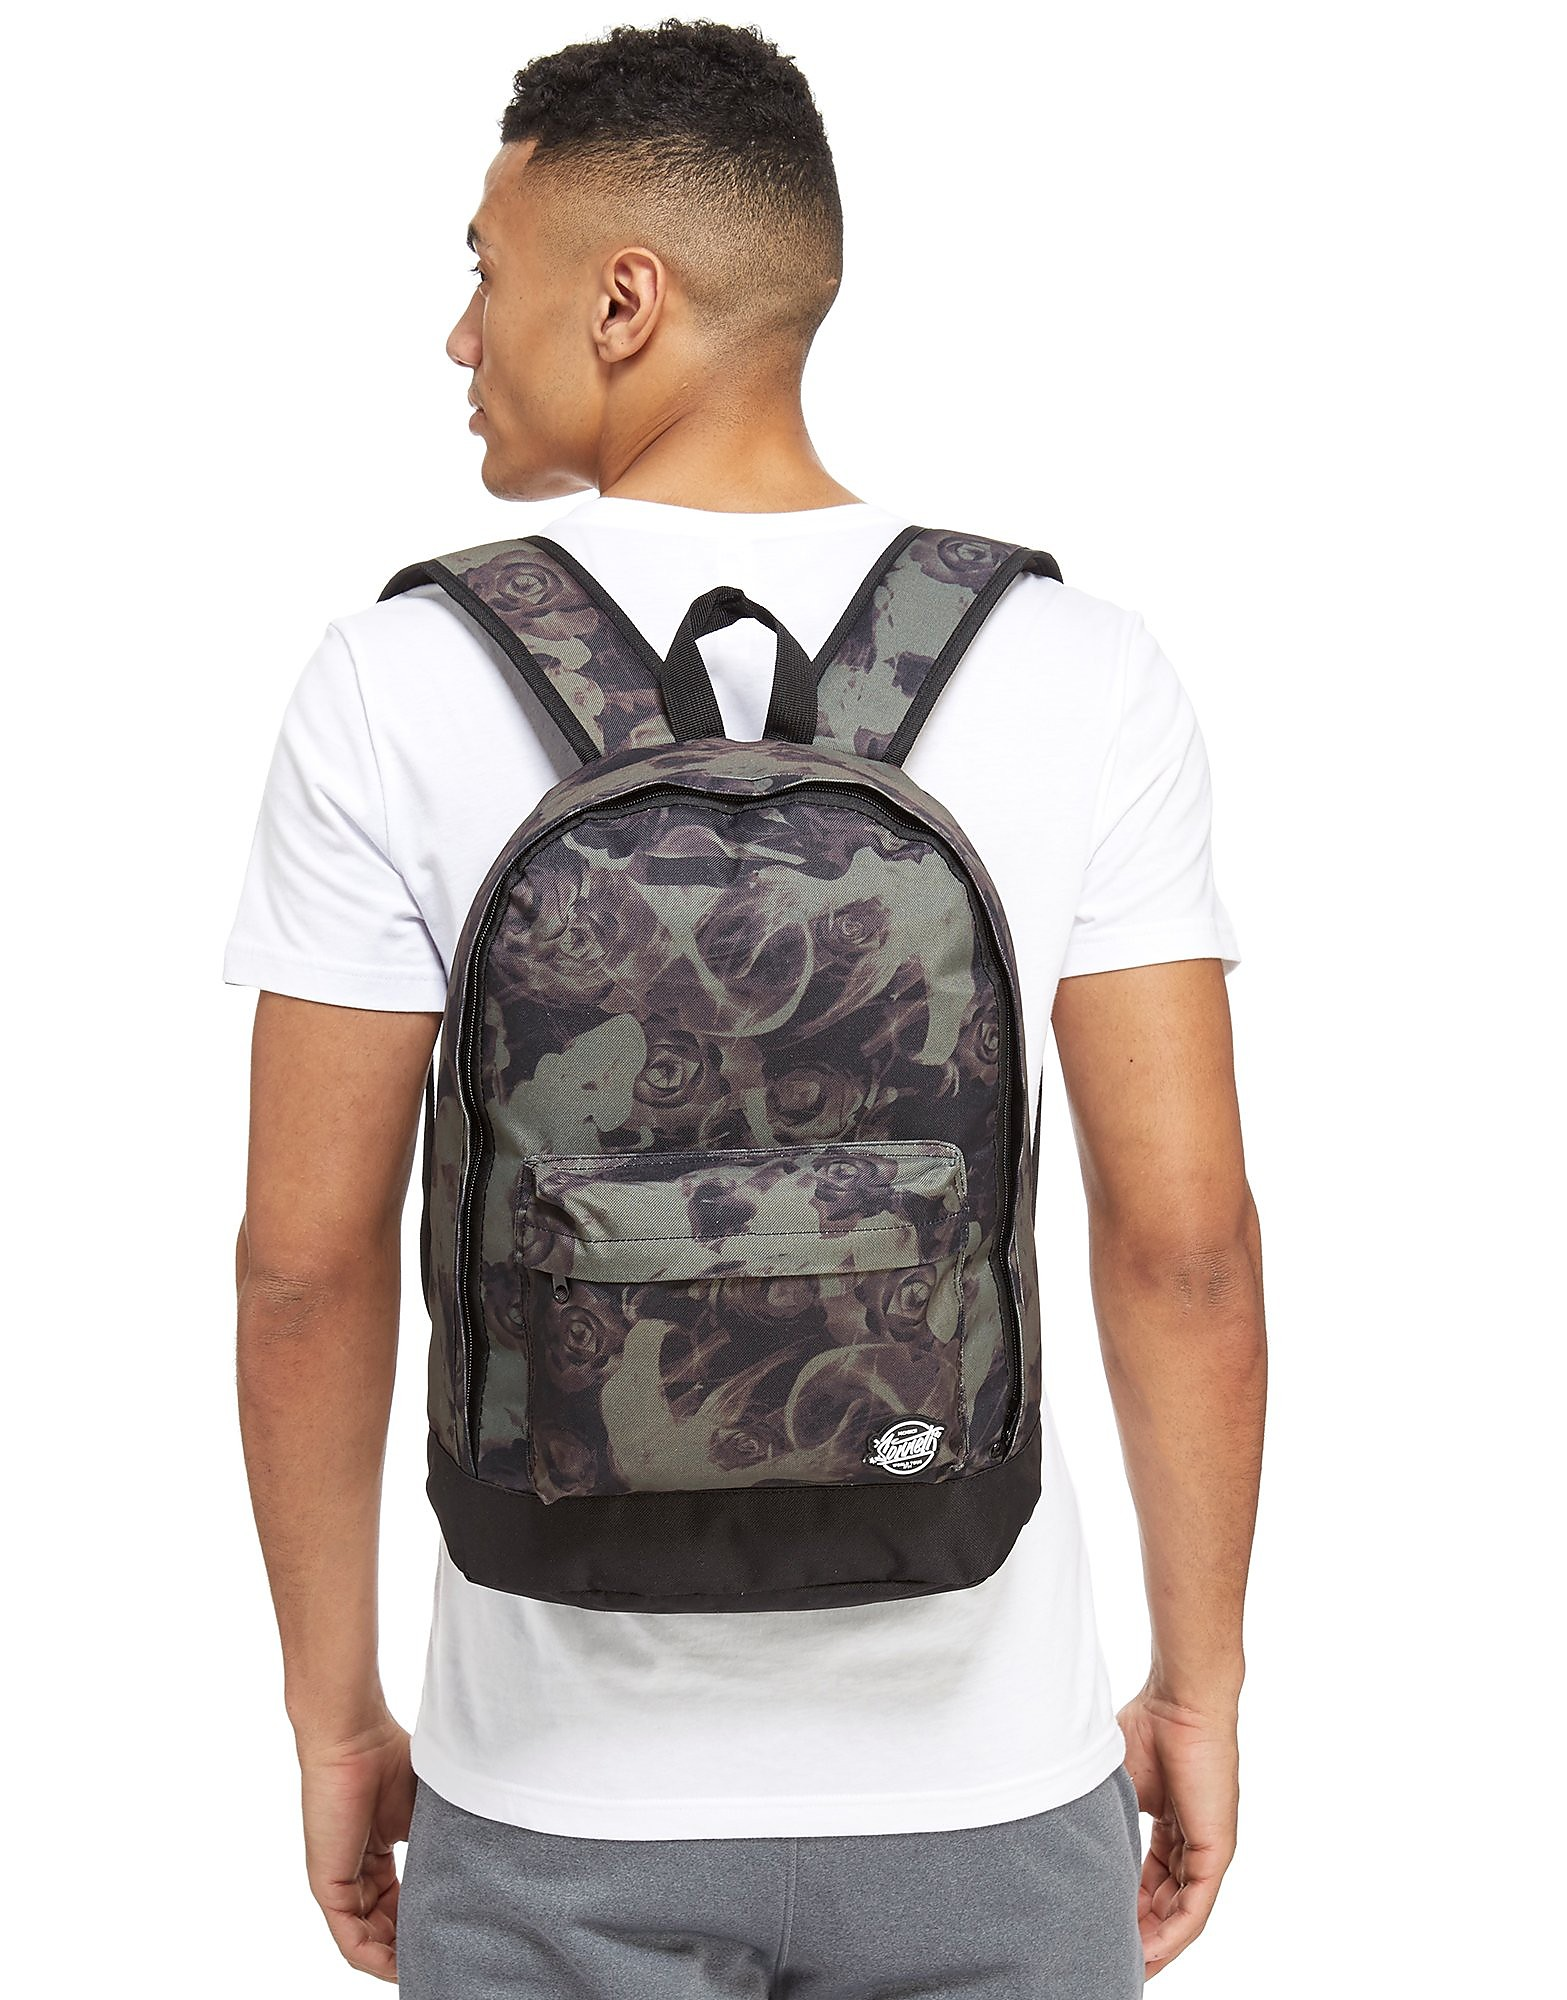 Sonneti Fallen Rose Backpack